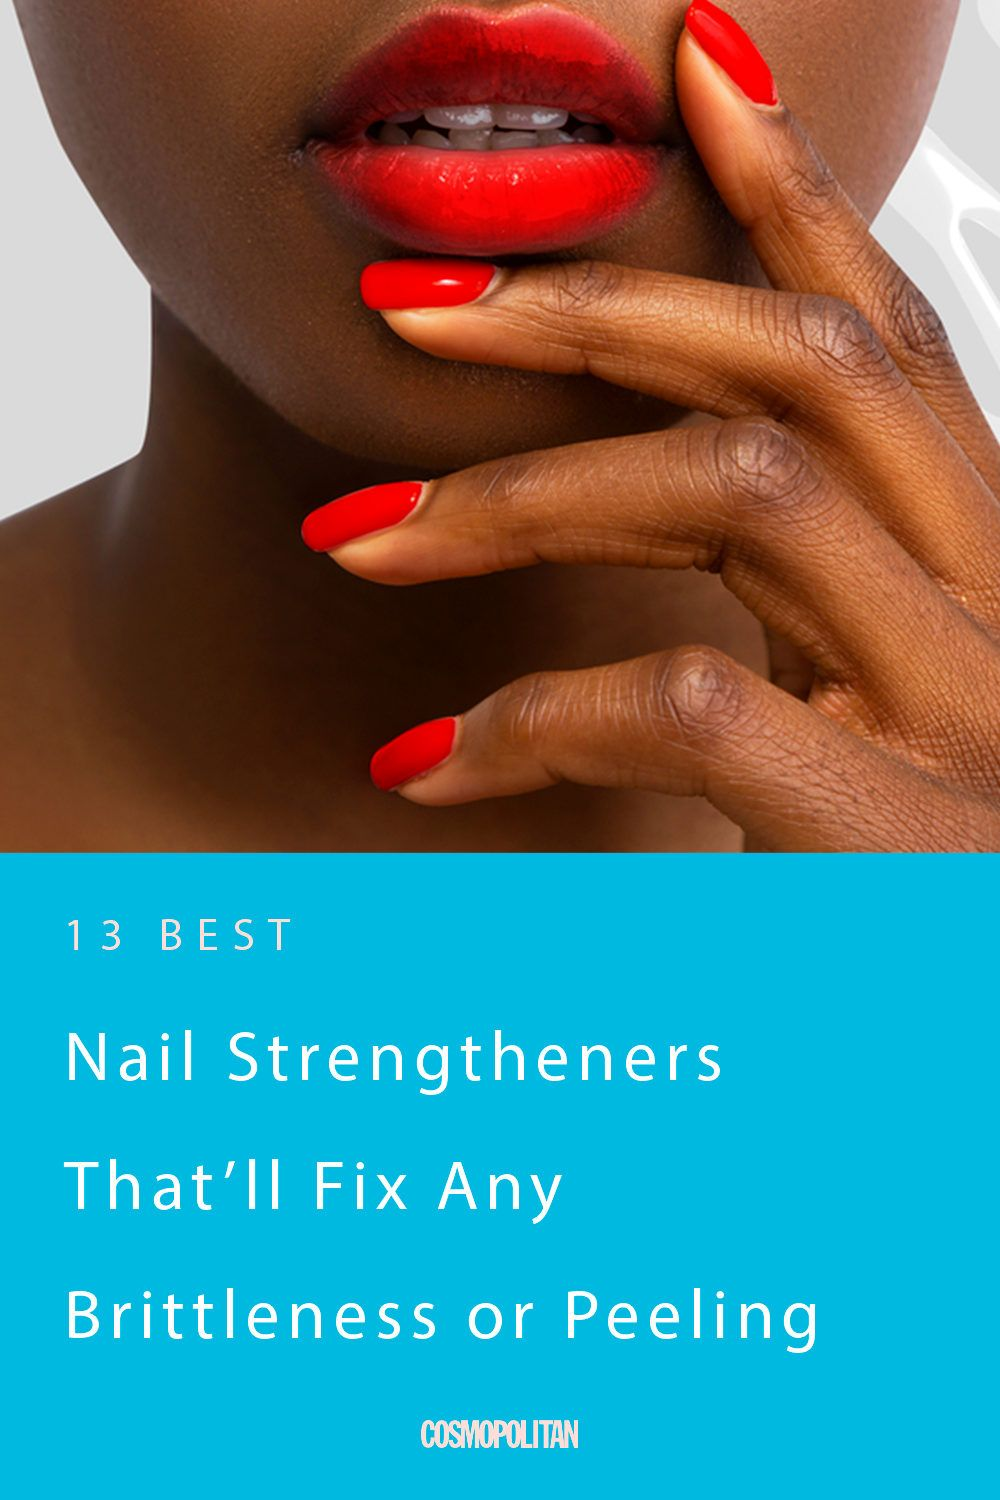 13 Nail Strengtheners That'll Fix Any Brittleness or Peeling